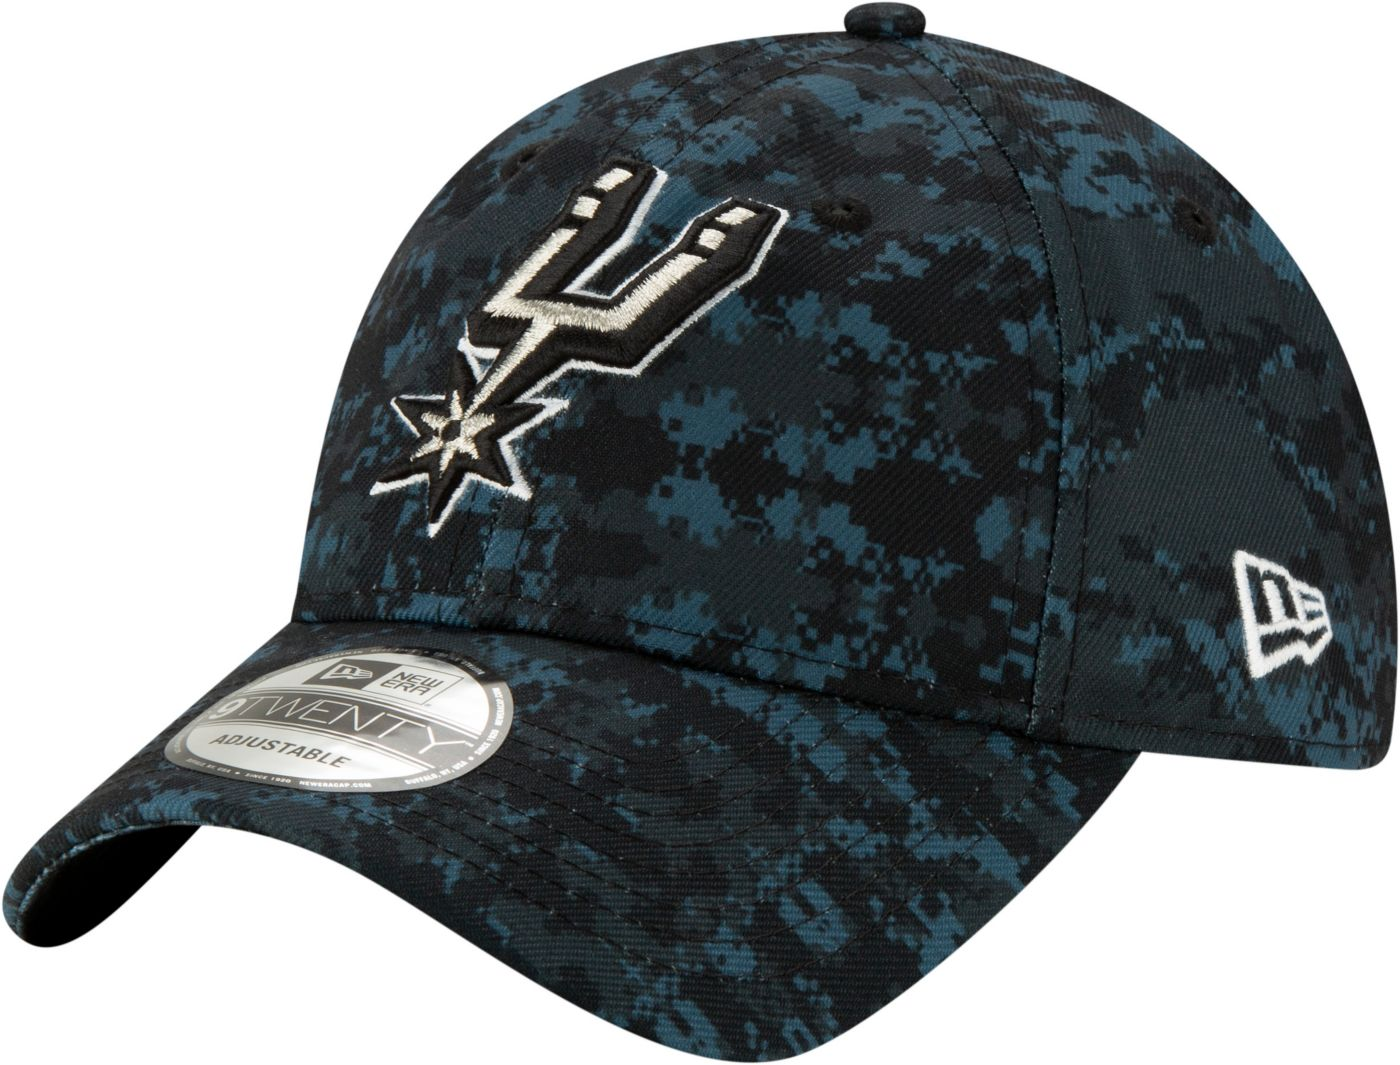 New Era Men's San Antonio Spurs 9Twenty City Edition Adjustable Hat